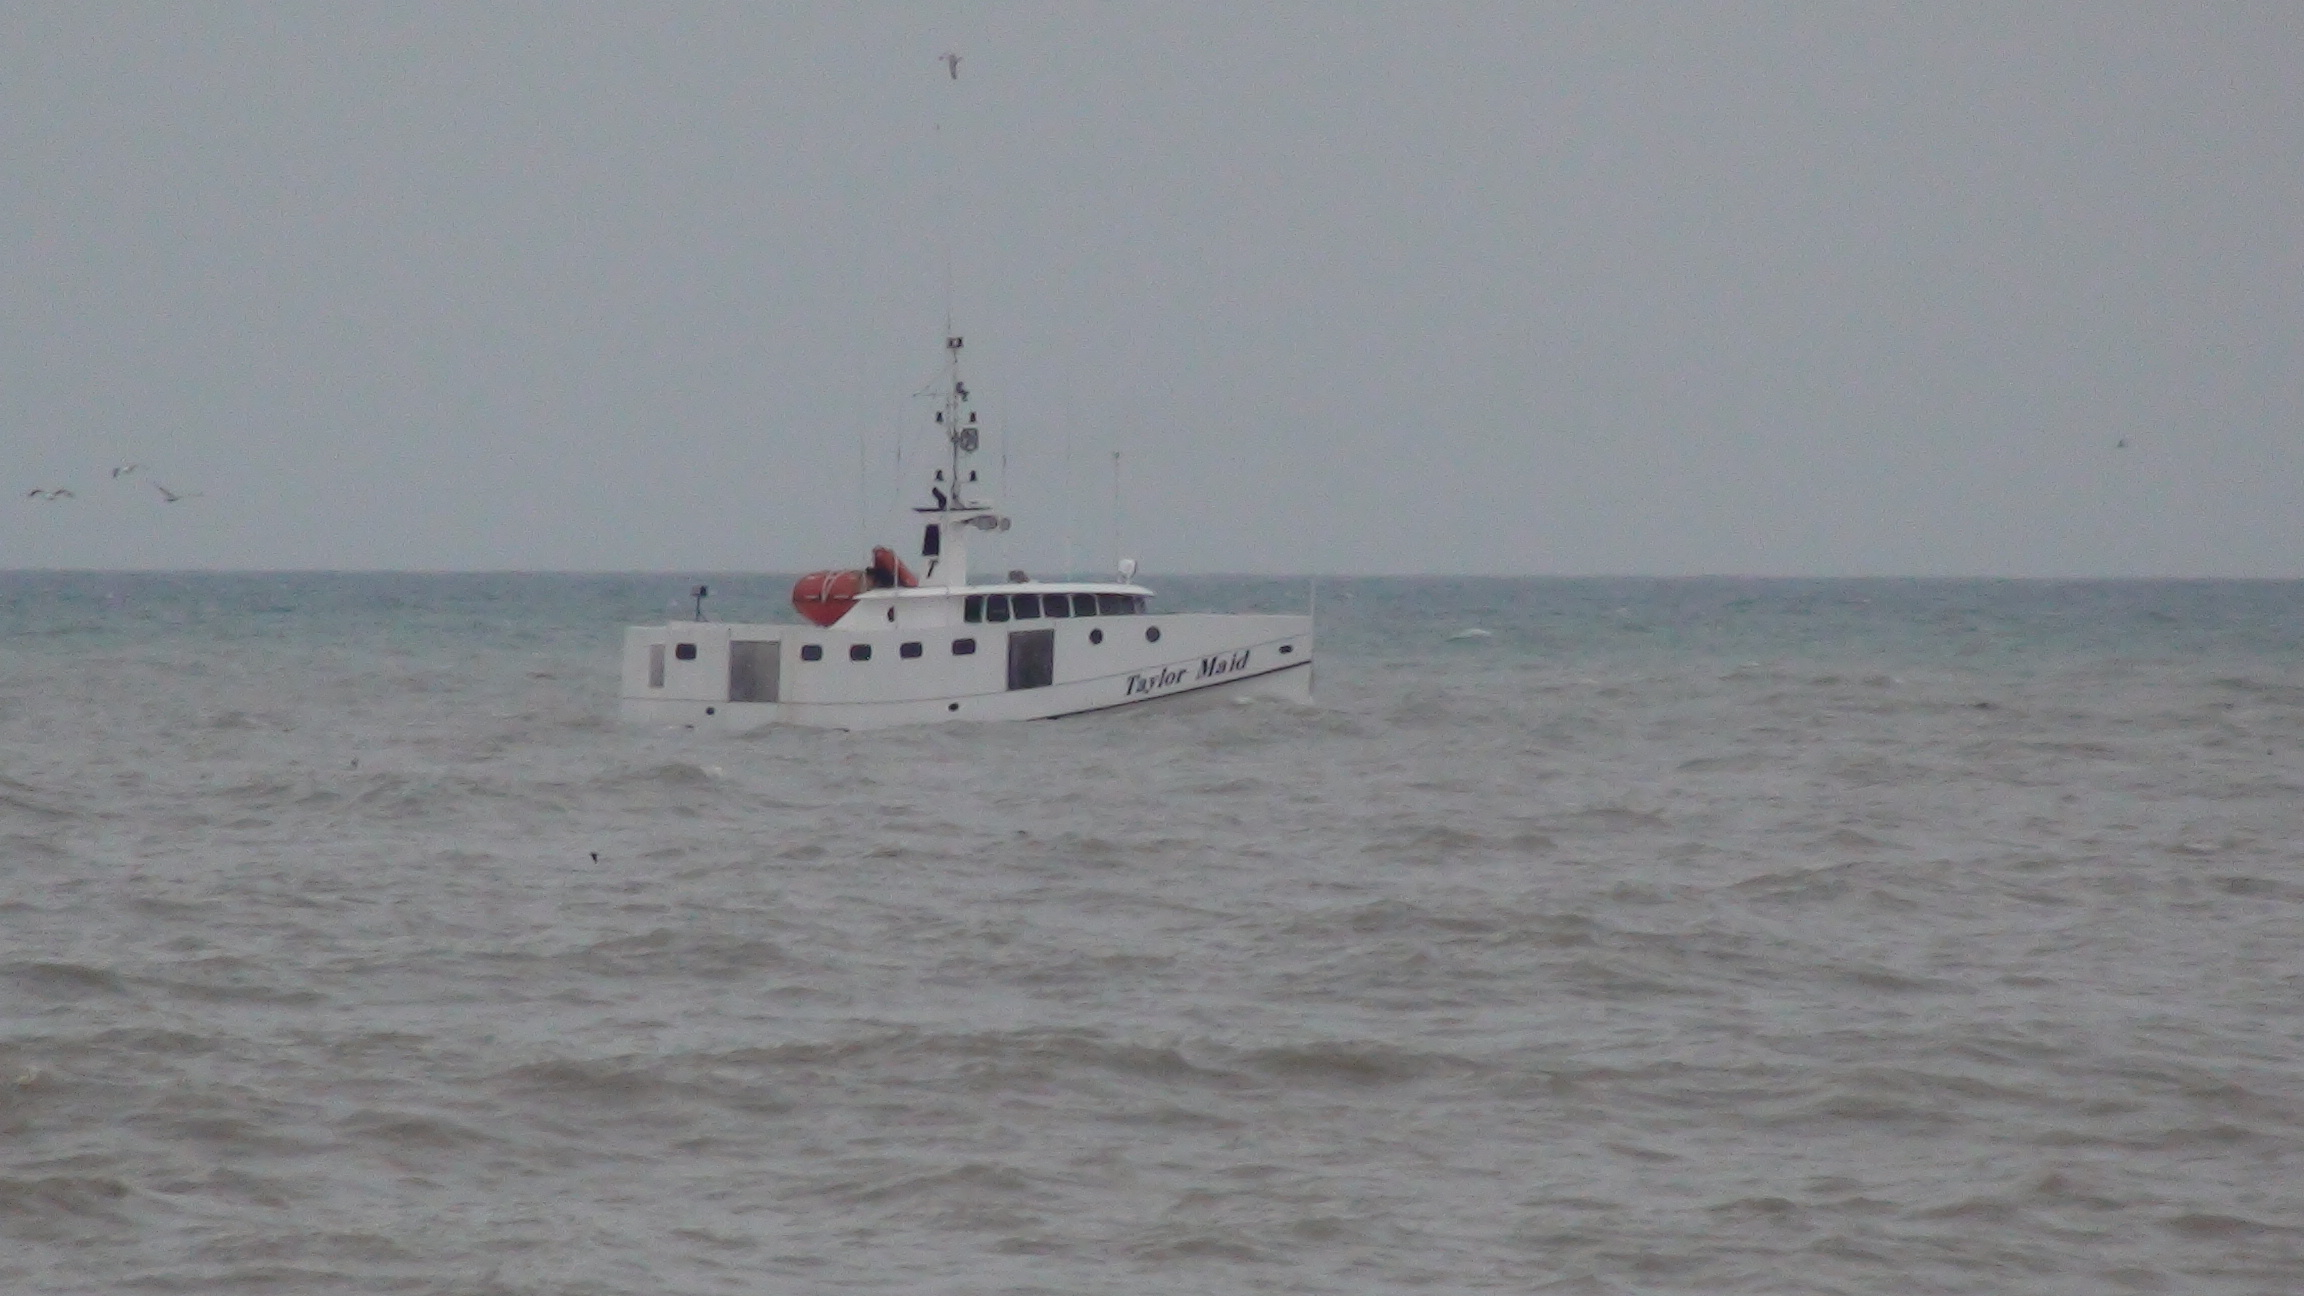 Taylor Maid fishing vessel leaves Wheatley Harbour. (File photo by Simon Crouch)